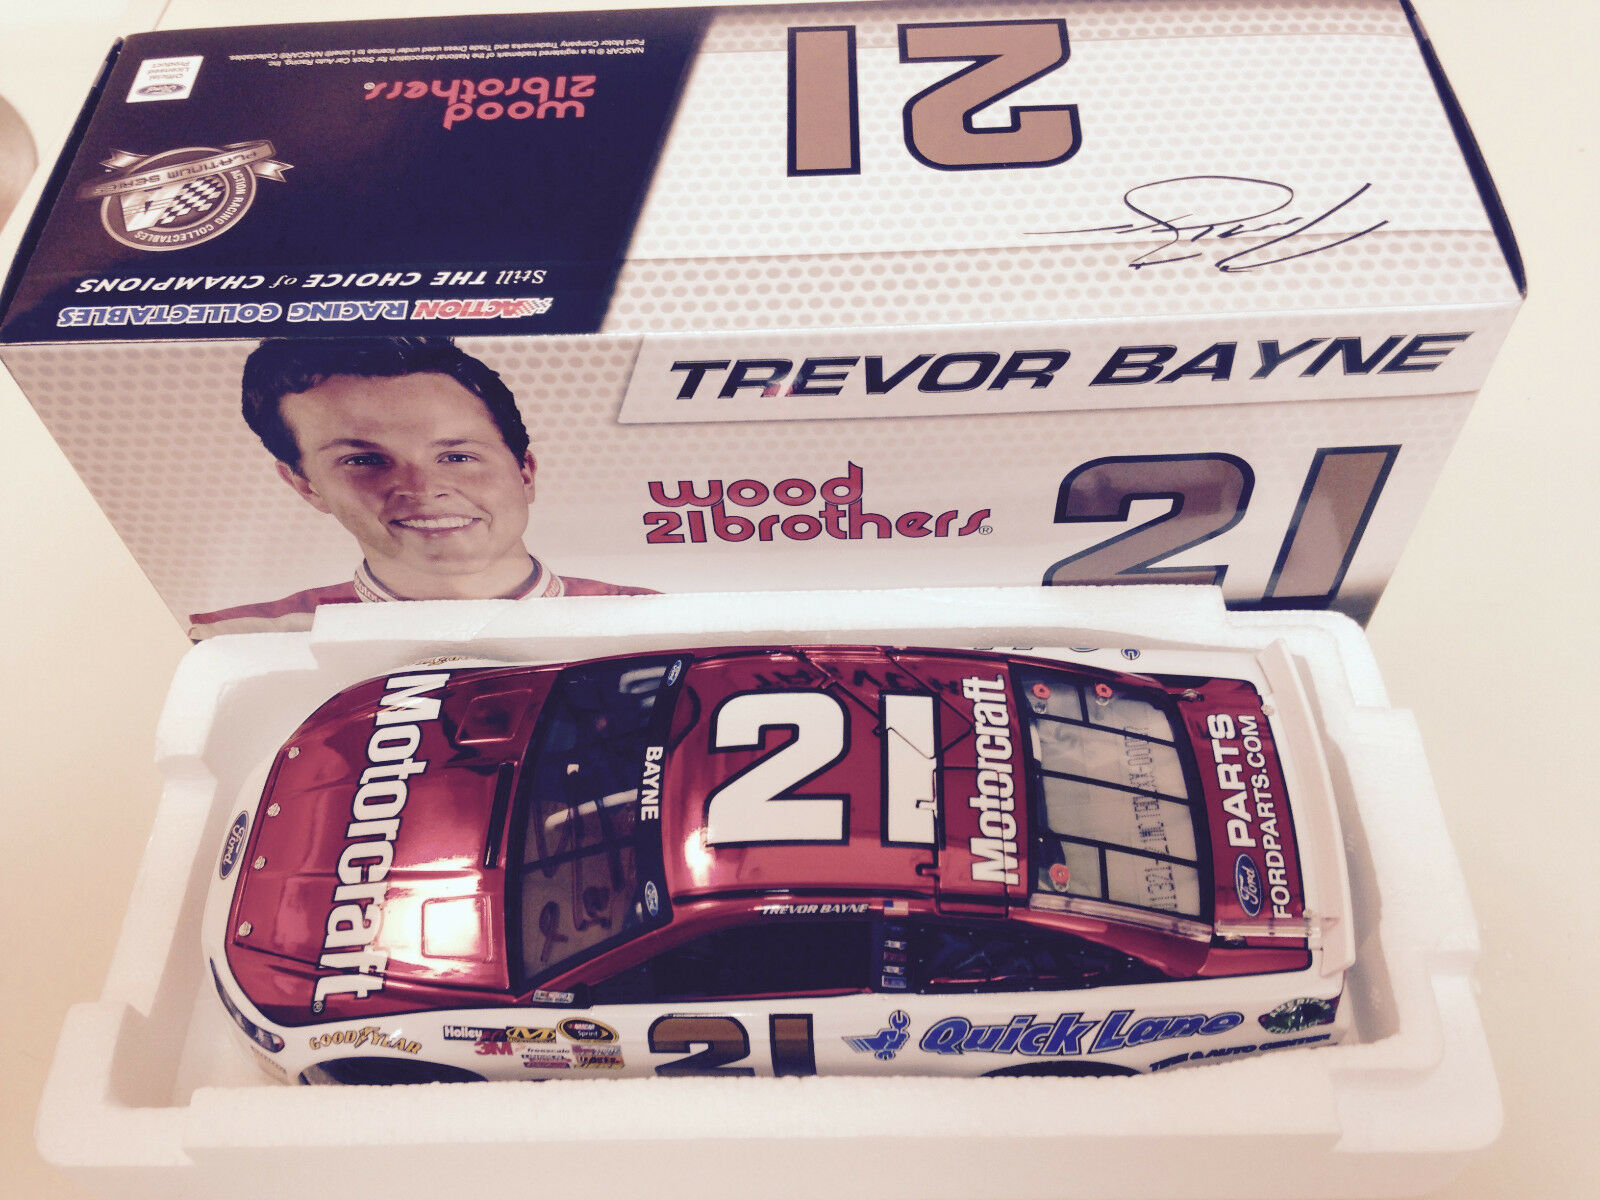 2013 Trevor Bayne Wood Bros Motorcraft color Chrome Autographed Car 1 of 96